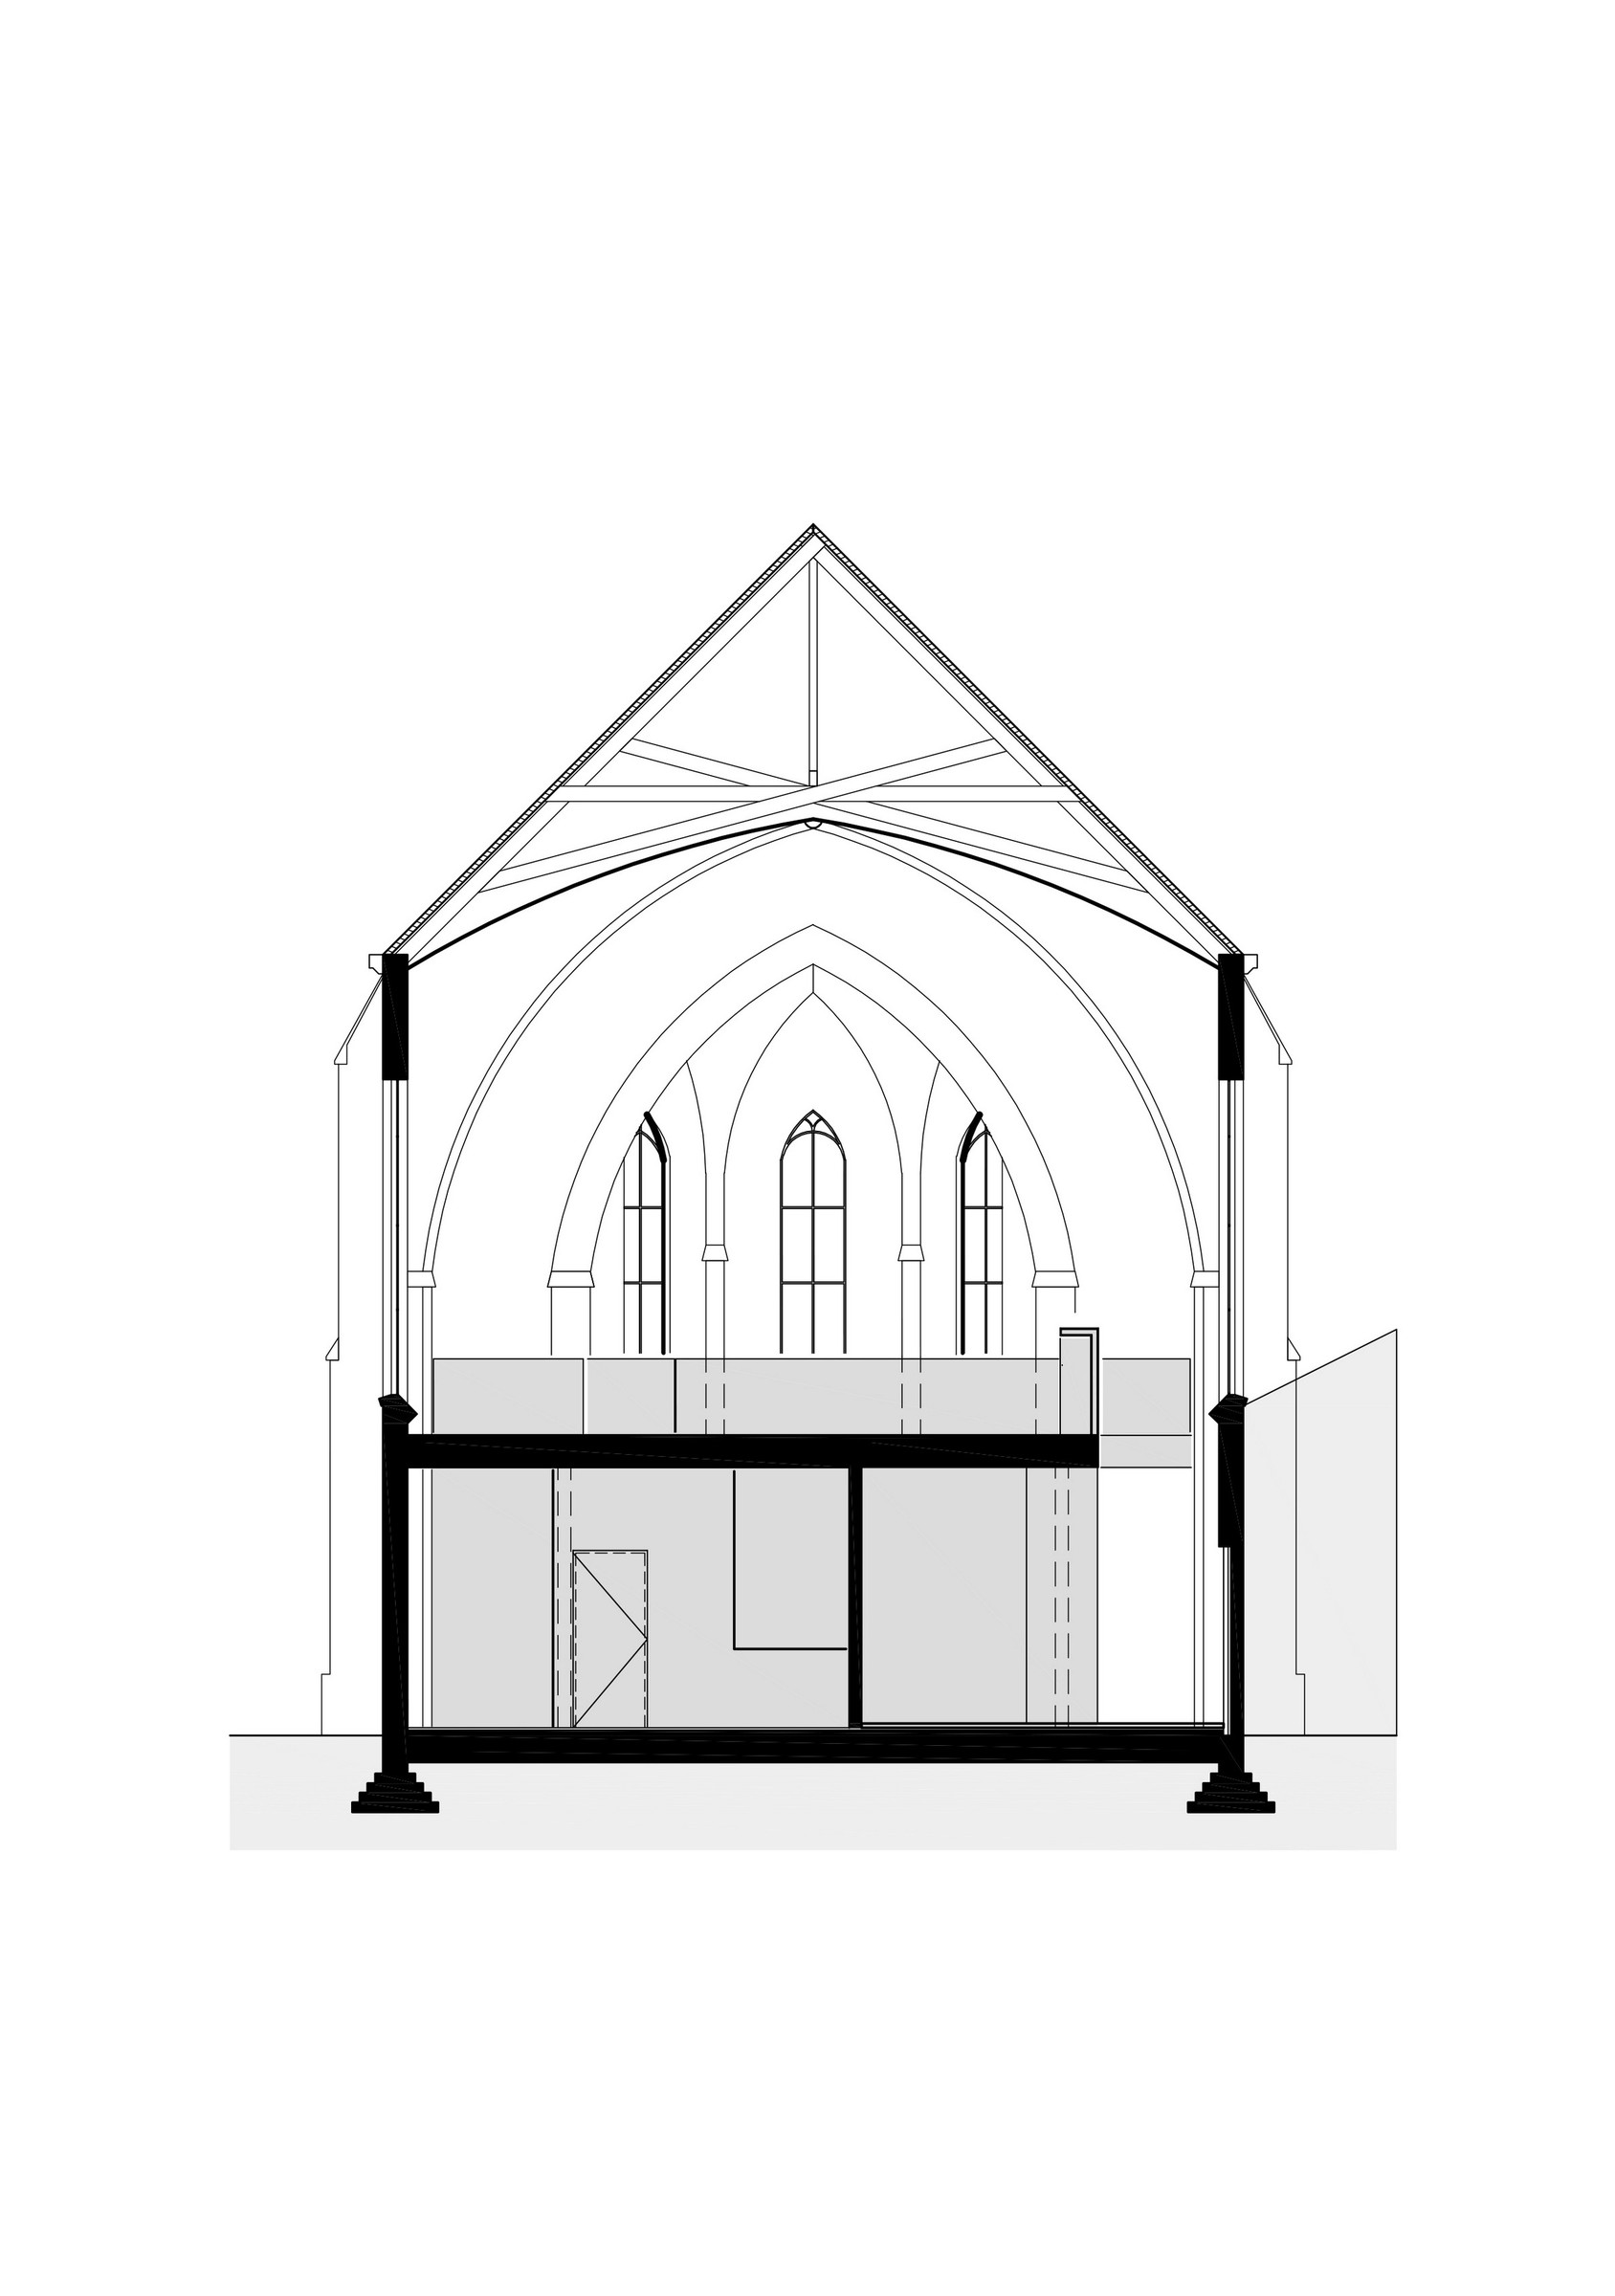 Zecc_Architecten-transformation-church-house-office.jpg